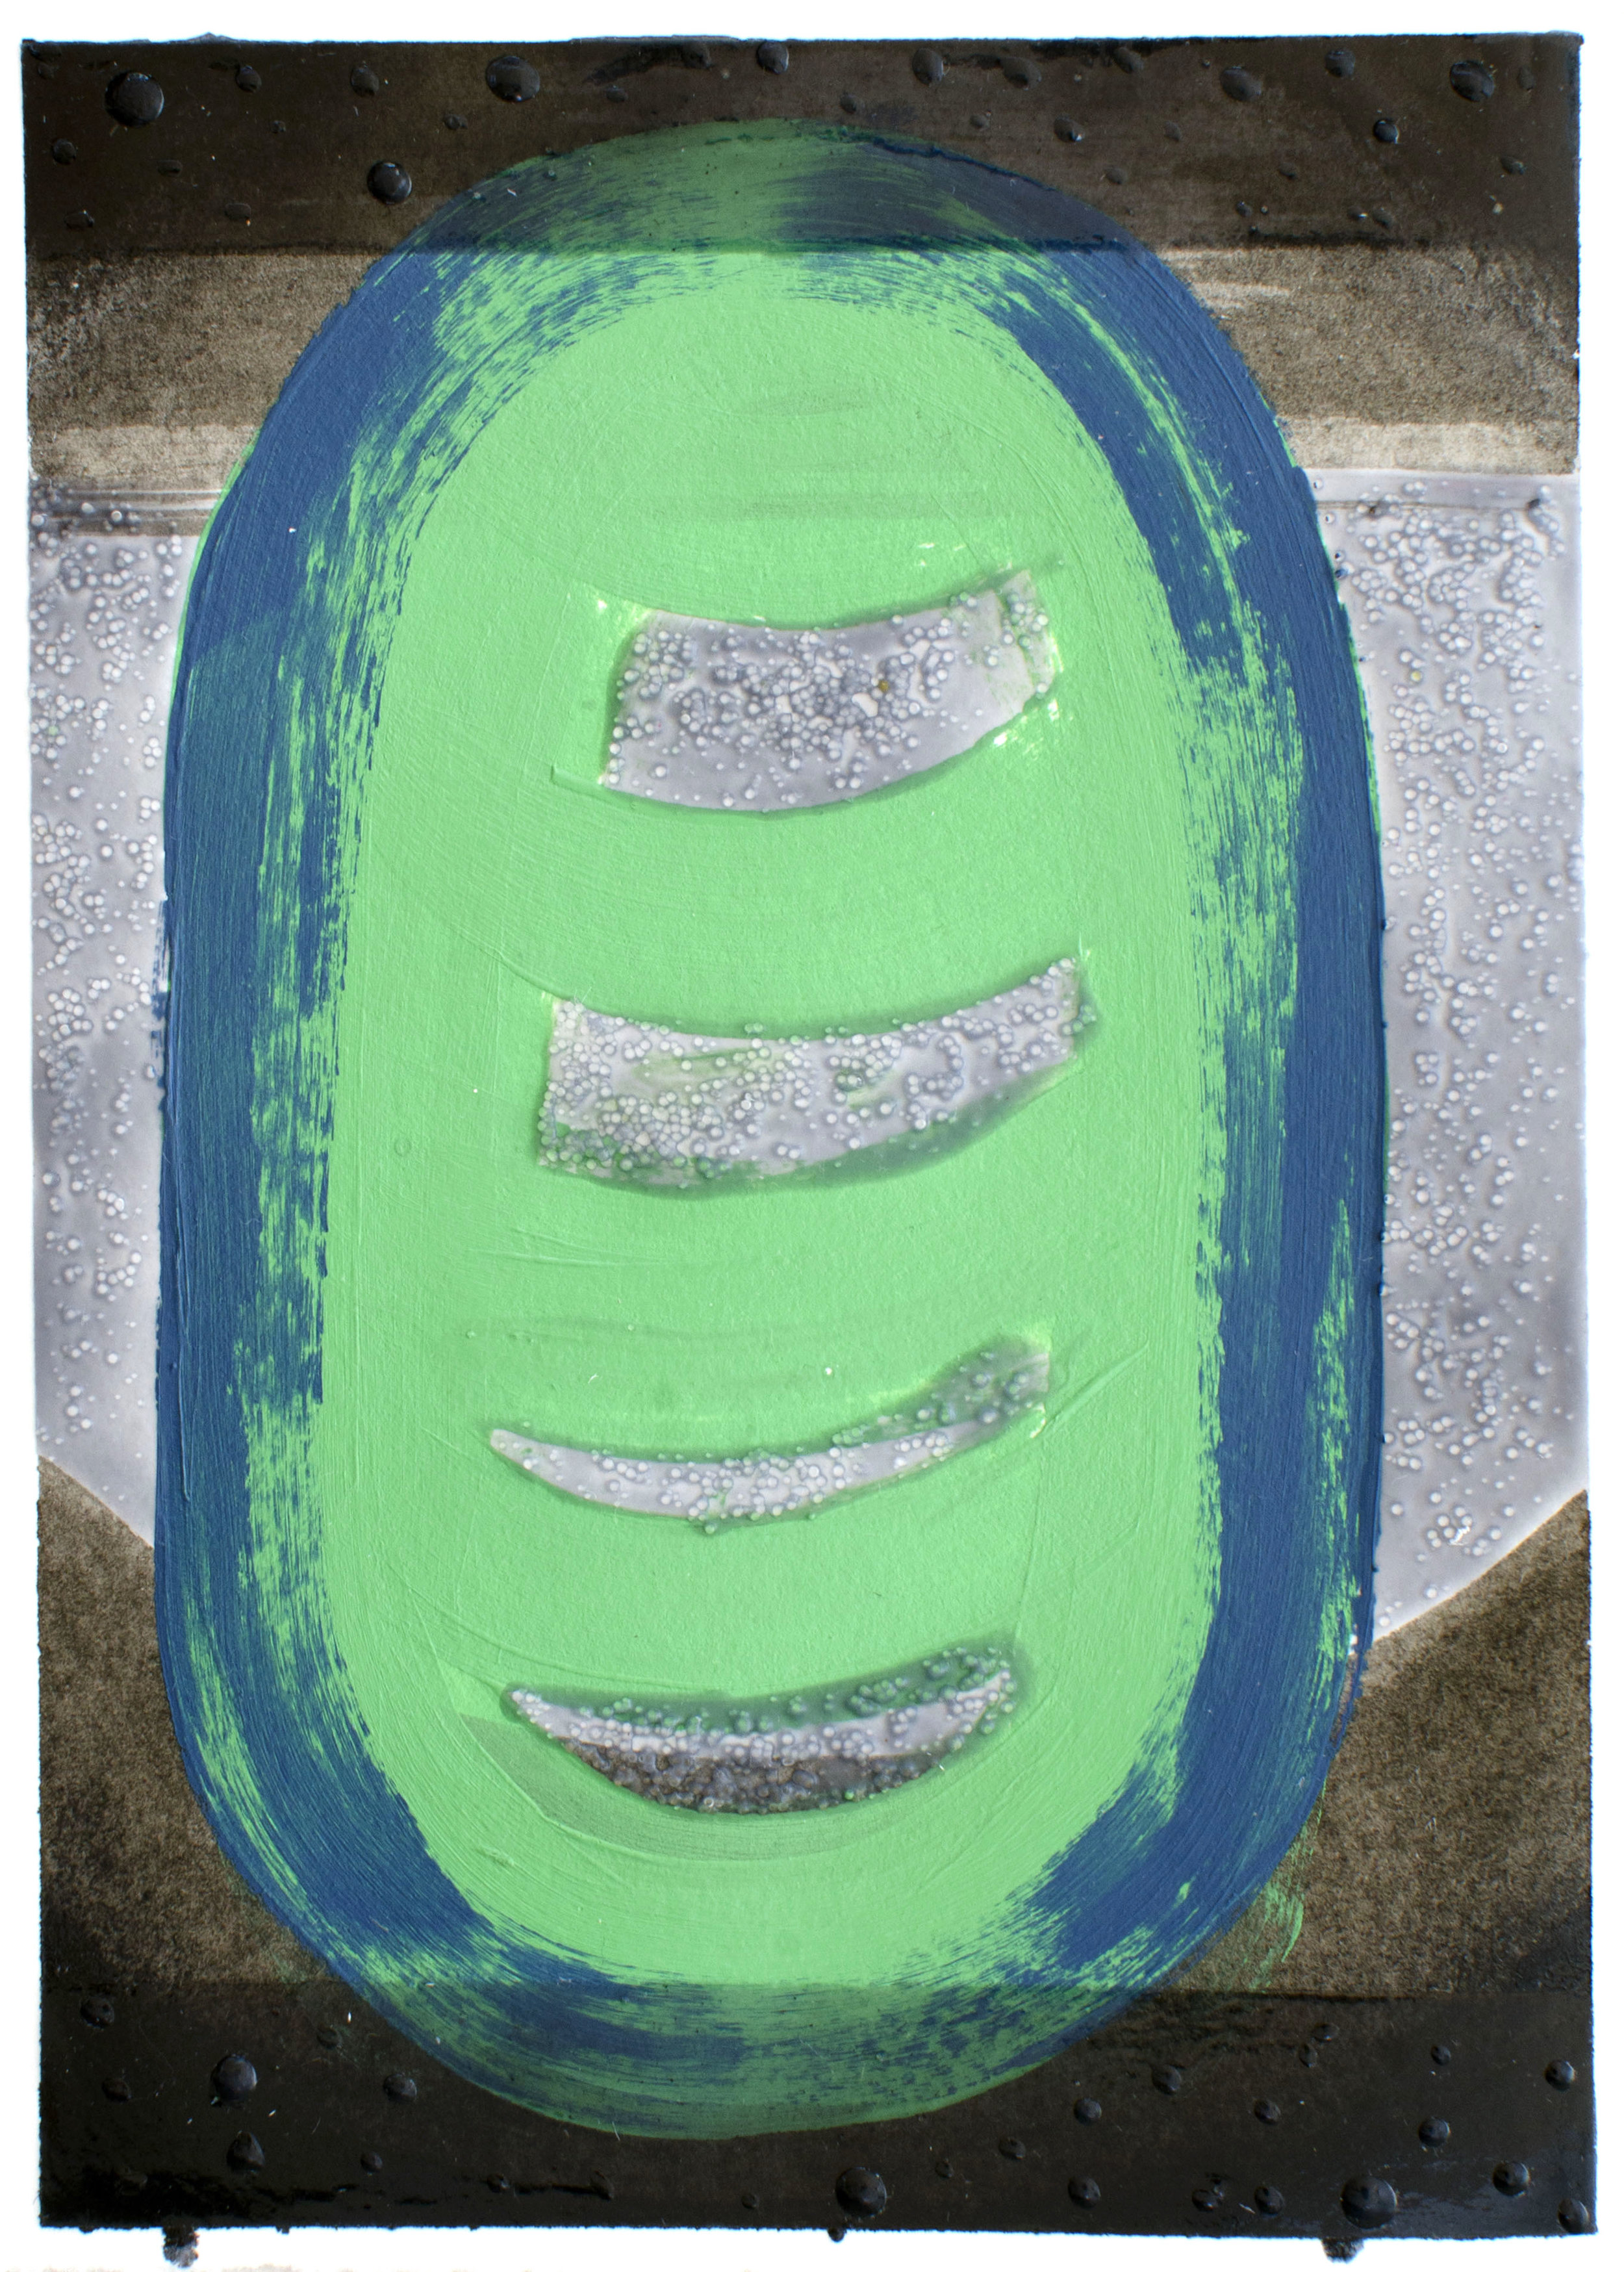 """Float - Elise Thompson7"""" x 5"""" ink, acrylic, and glass beads on paper, framed$175"""